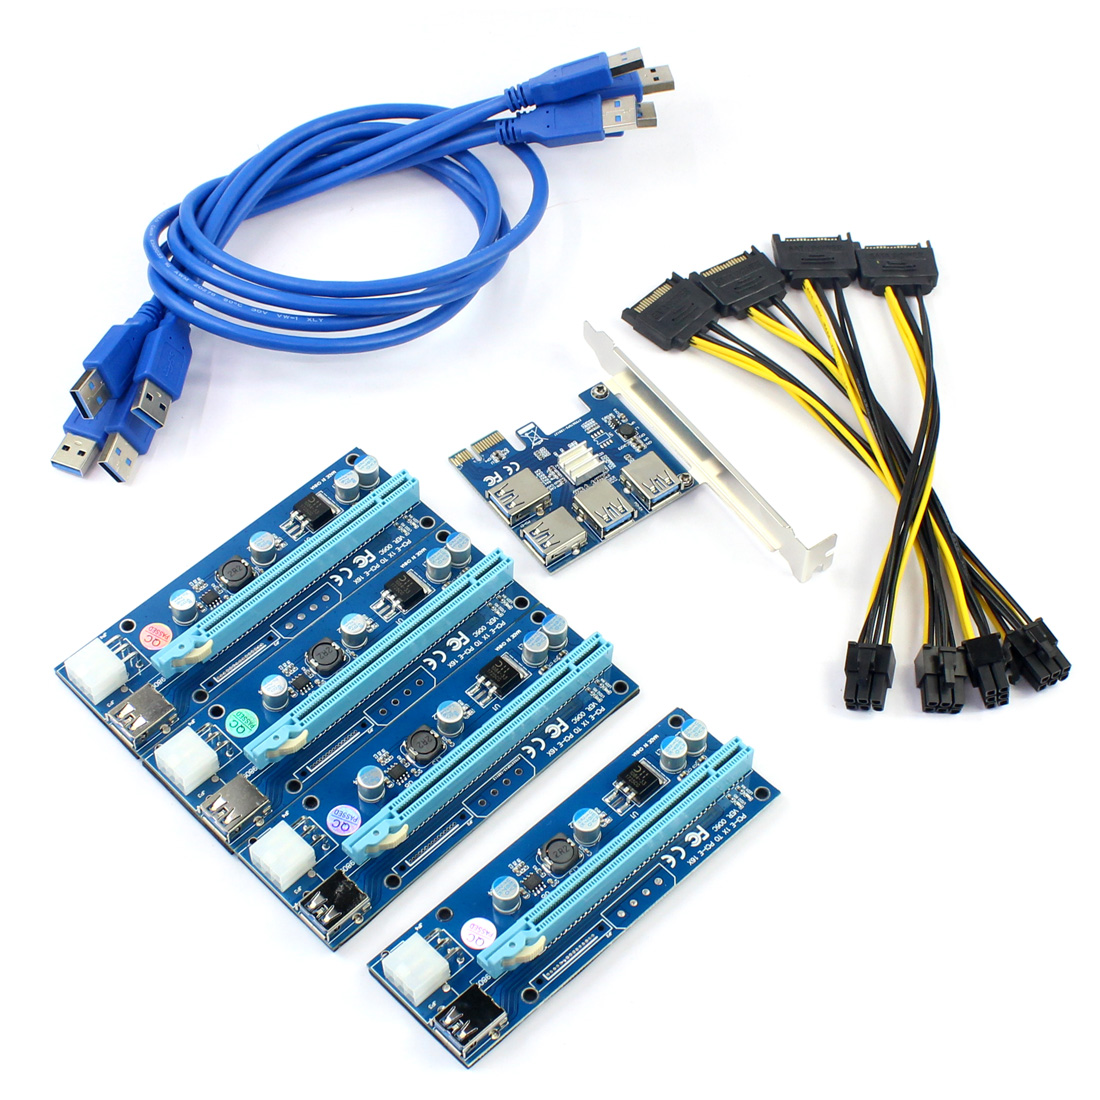 NEW Add in Card PCIe 1 to 4 PCI Express 16X Slots Riser Card PCI-E 1X to External 4 PCI-e Slot Adapter PCIe Port Multiplier Card